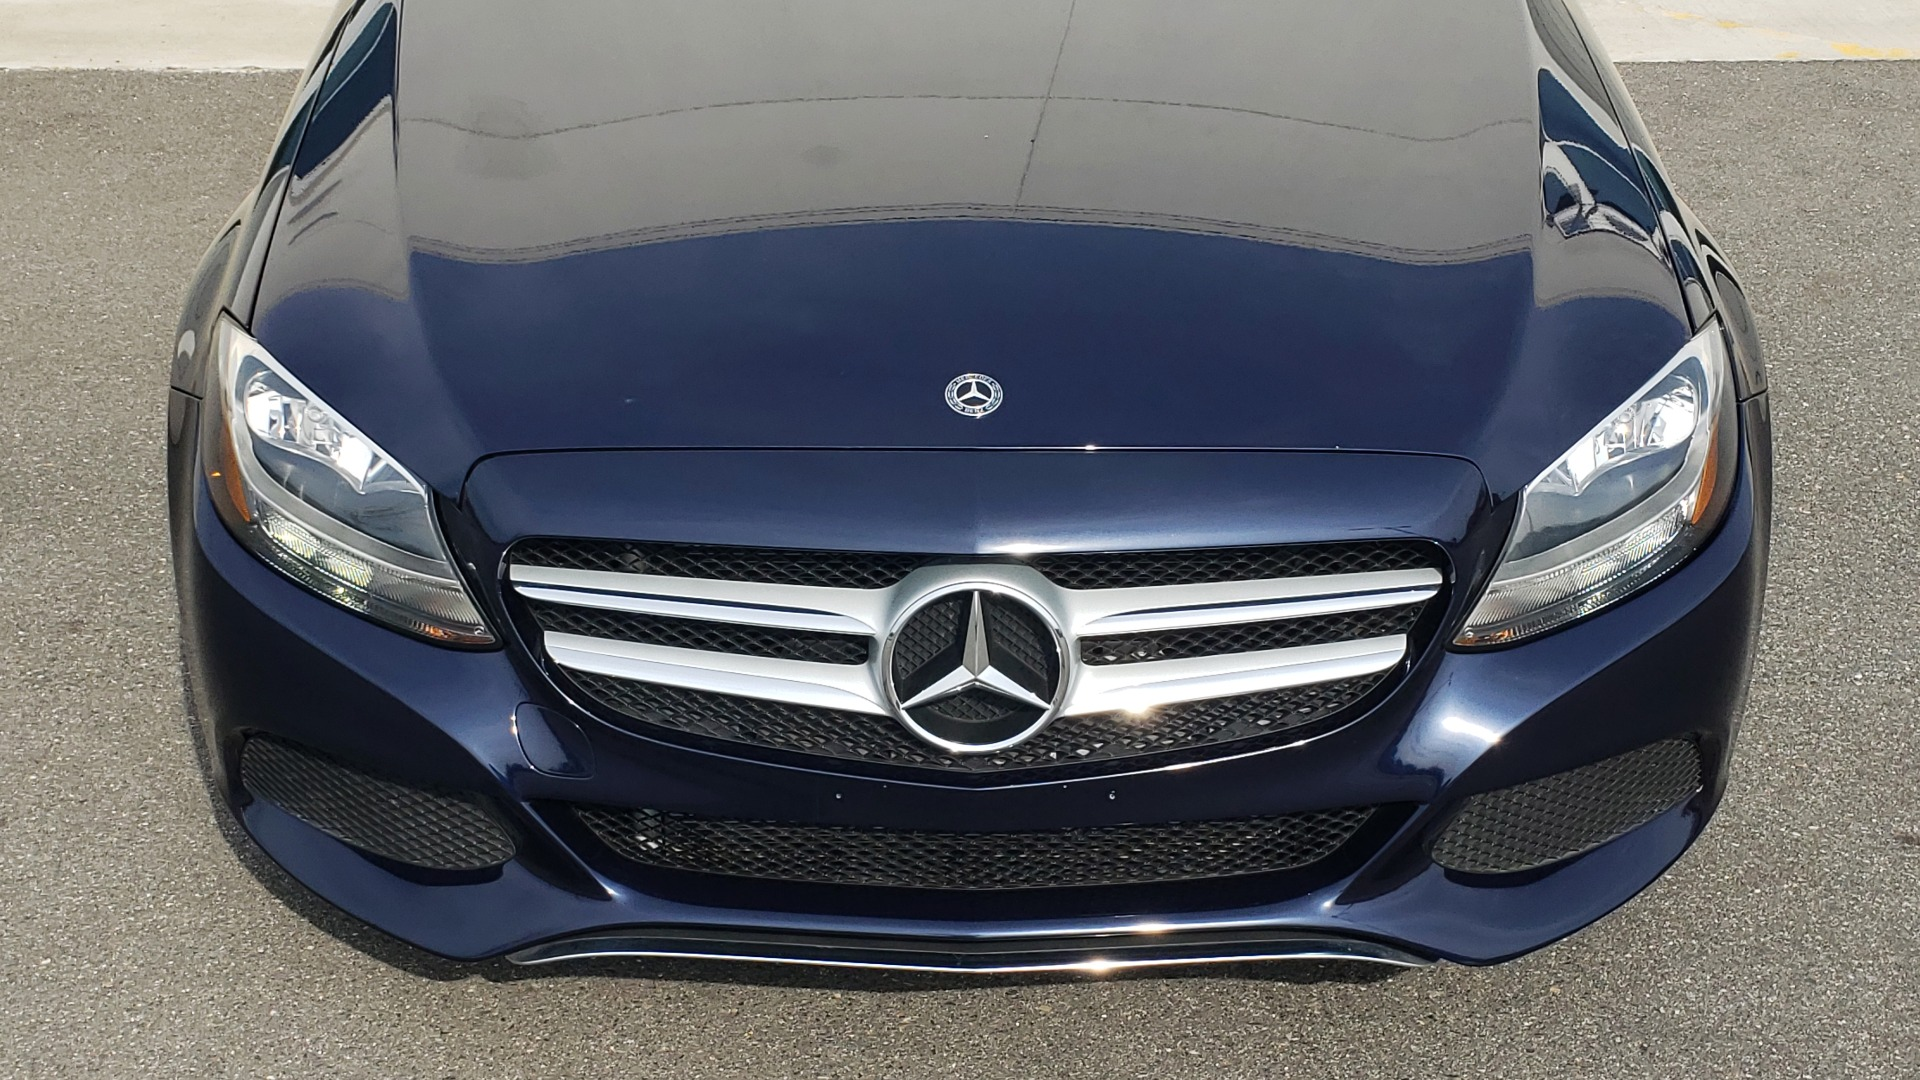 Used 2018 Mercedes-Benz C-CLASS C 300 PREMIUM / PANO-ROOF / HTD STST / APPL CARPLAY / REARVIEW for sale Sold at Formula Imports in Charlotte NC 28227 21